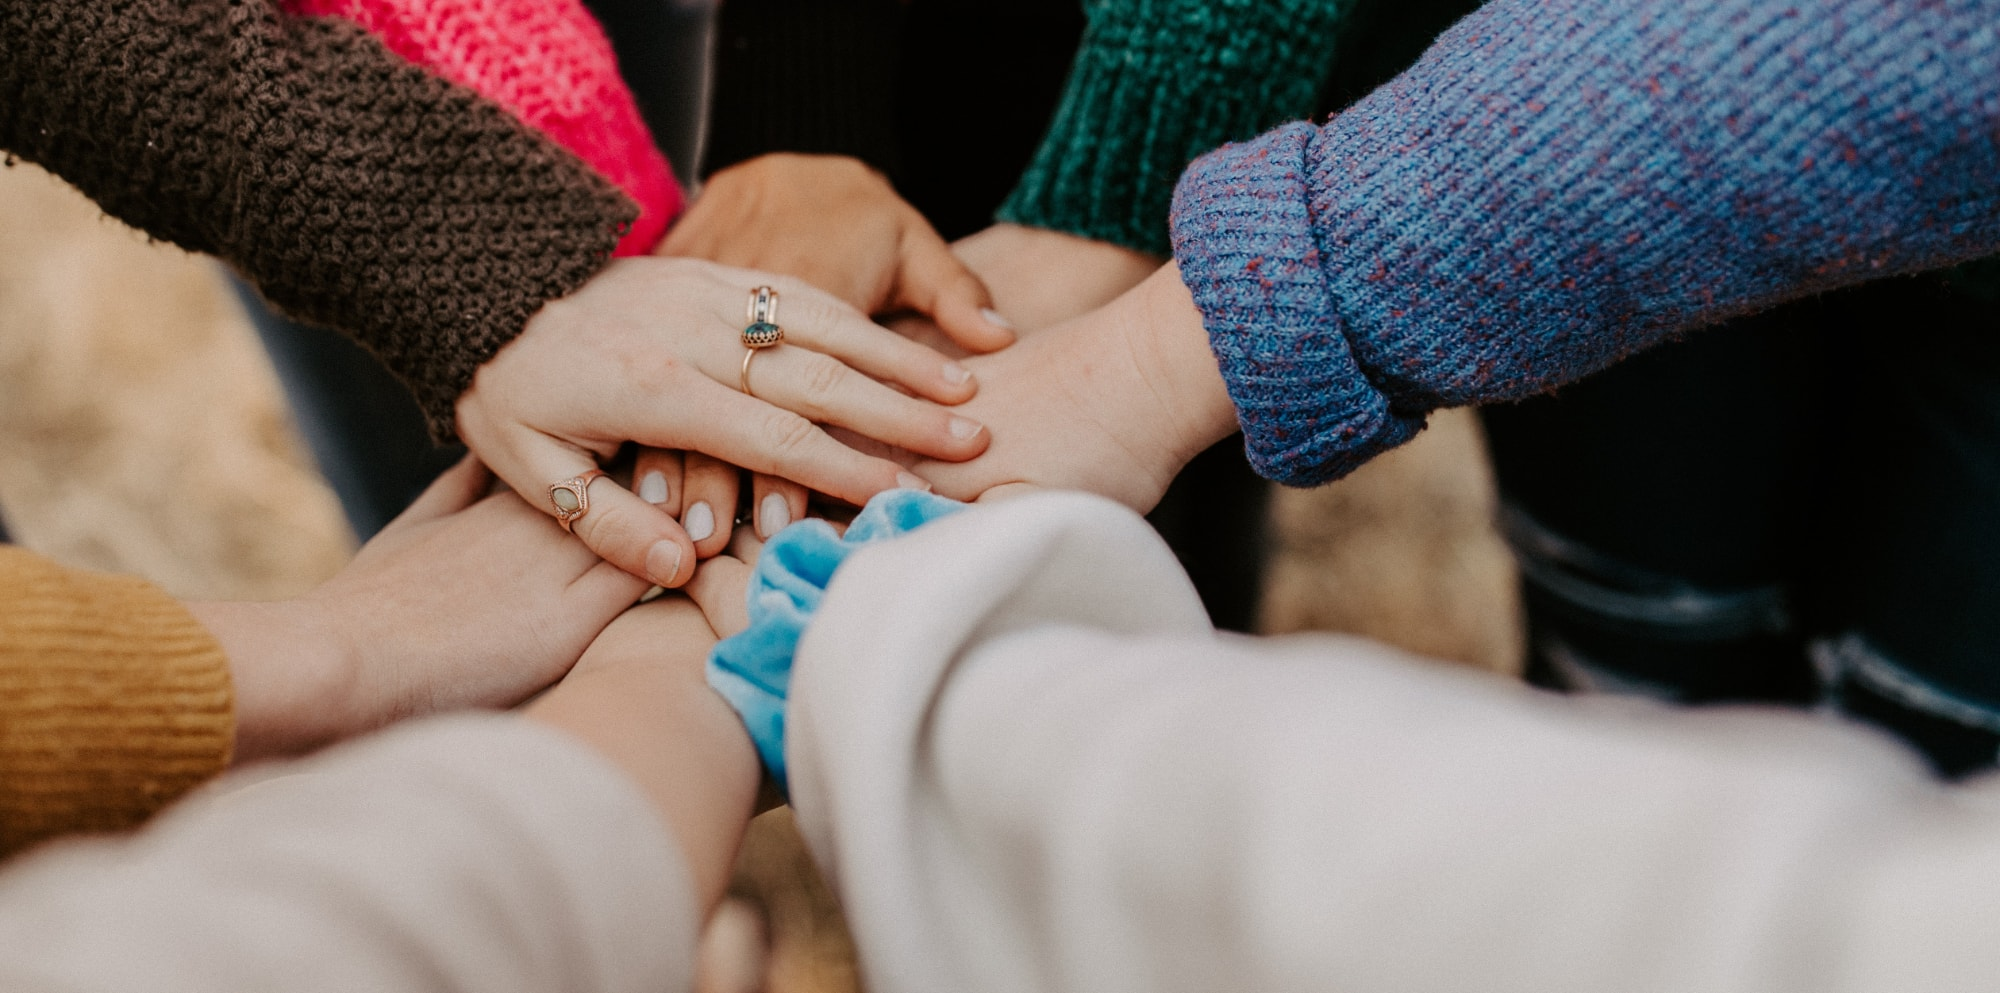 Photo by Hannah Busing, showing hands of a group of people creating common expression of community